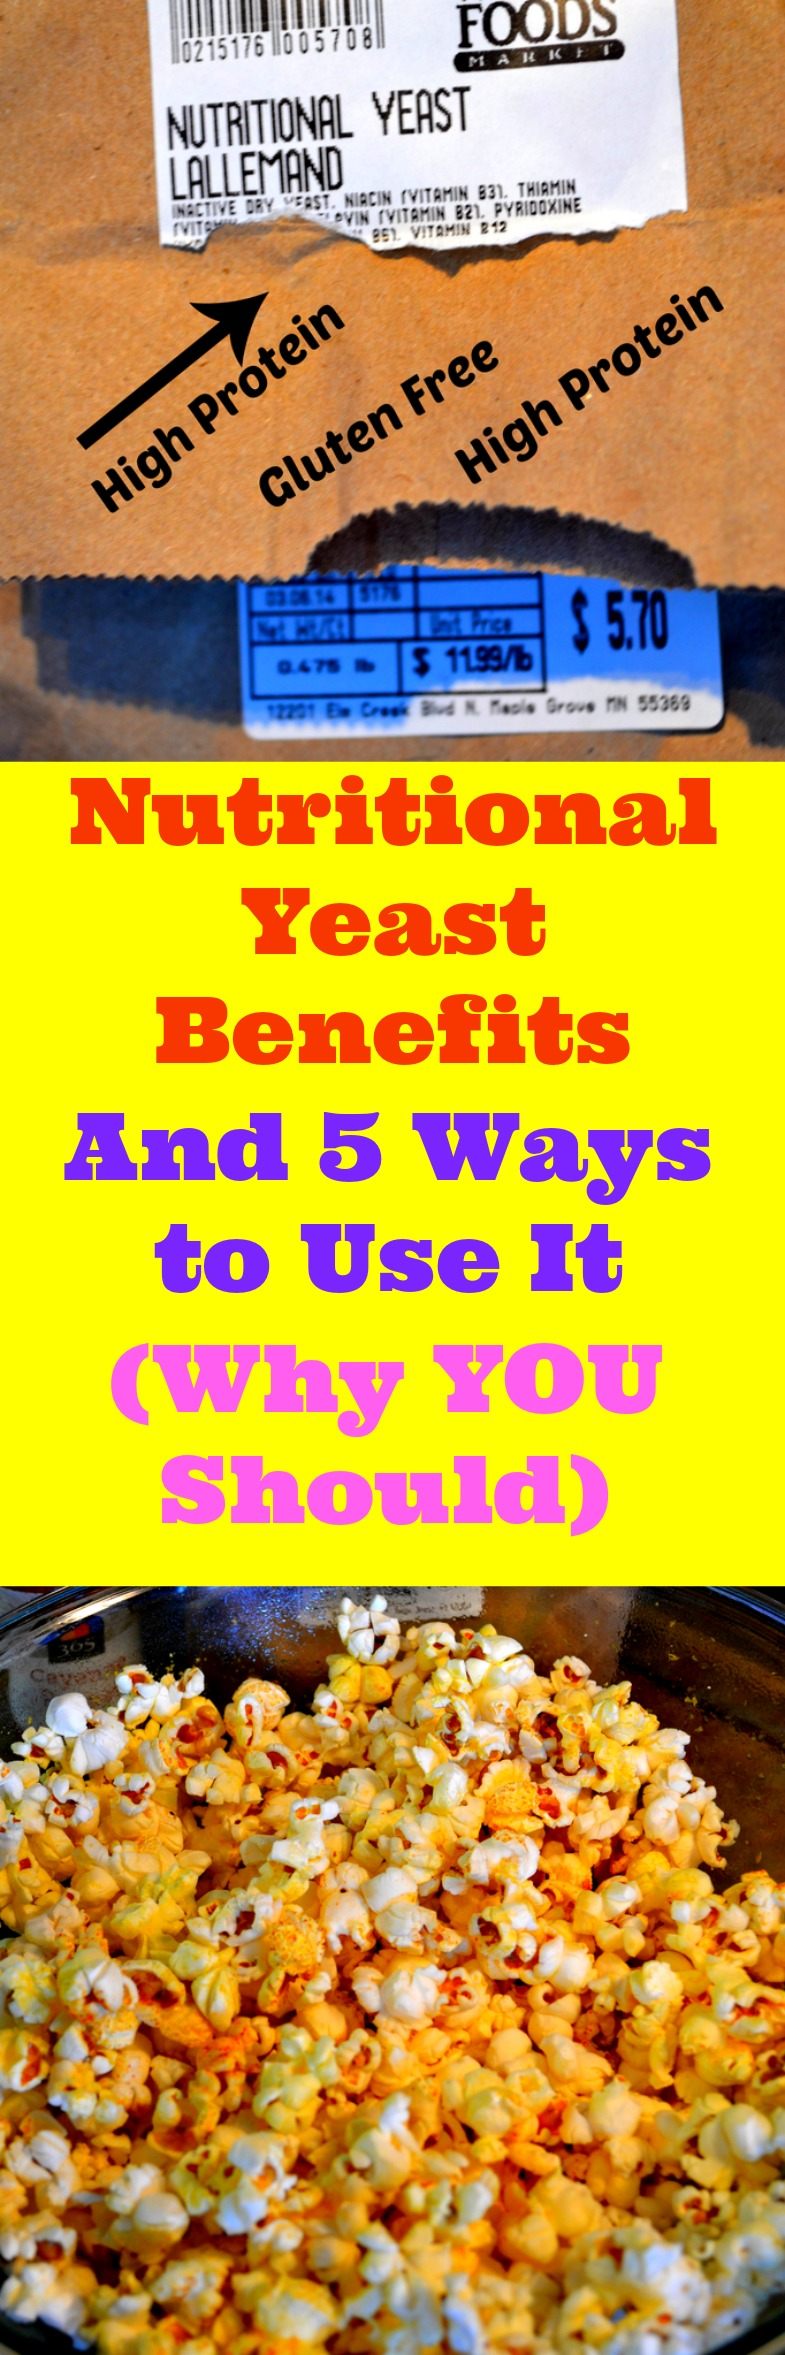 You must learn aboutNutritional Yeast Benefits and what it can do for your health. Nutritional Yeast can replace Parmesan cheese in a pinch and tastes very similar.Surprisingly high in protein with unexpected flavors. Certified Gluten-Free and now sold in most markets. Tastes great on popcorn, pizza, cauliflower, added into soup, is Vegan and vertually calorie free, making it great for weight loss.